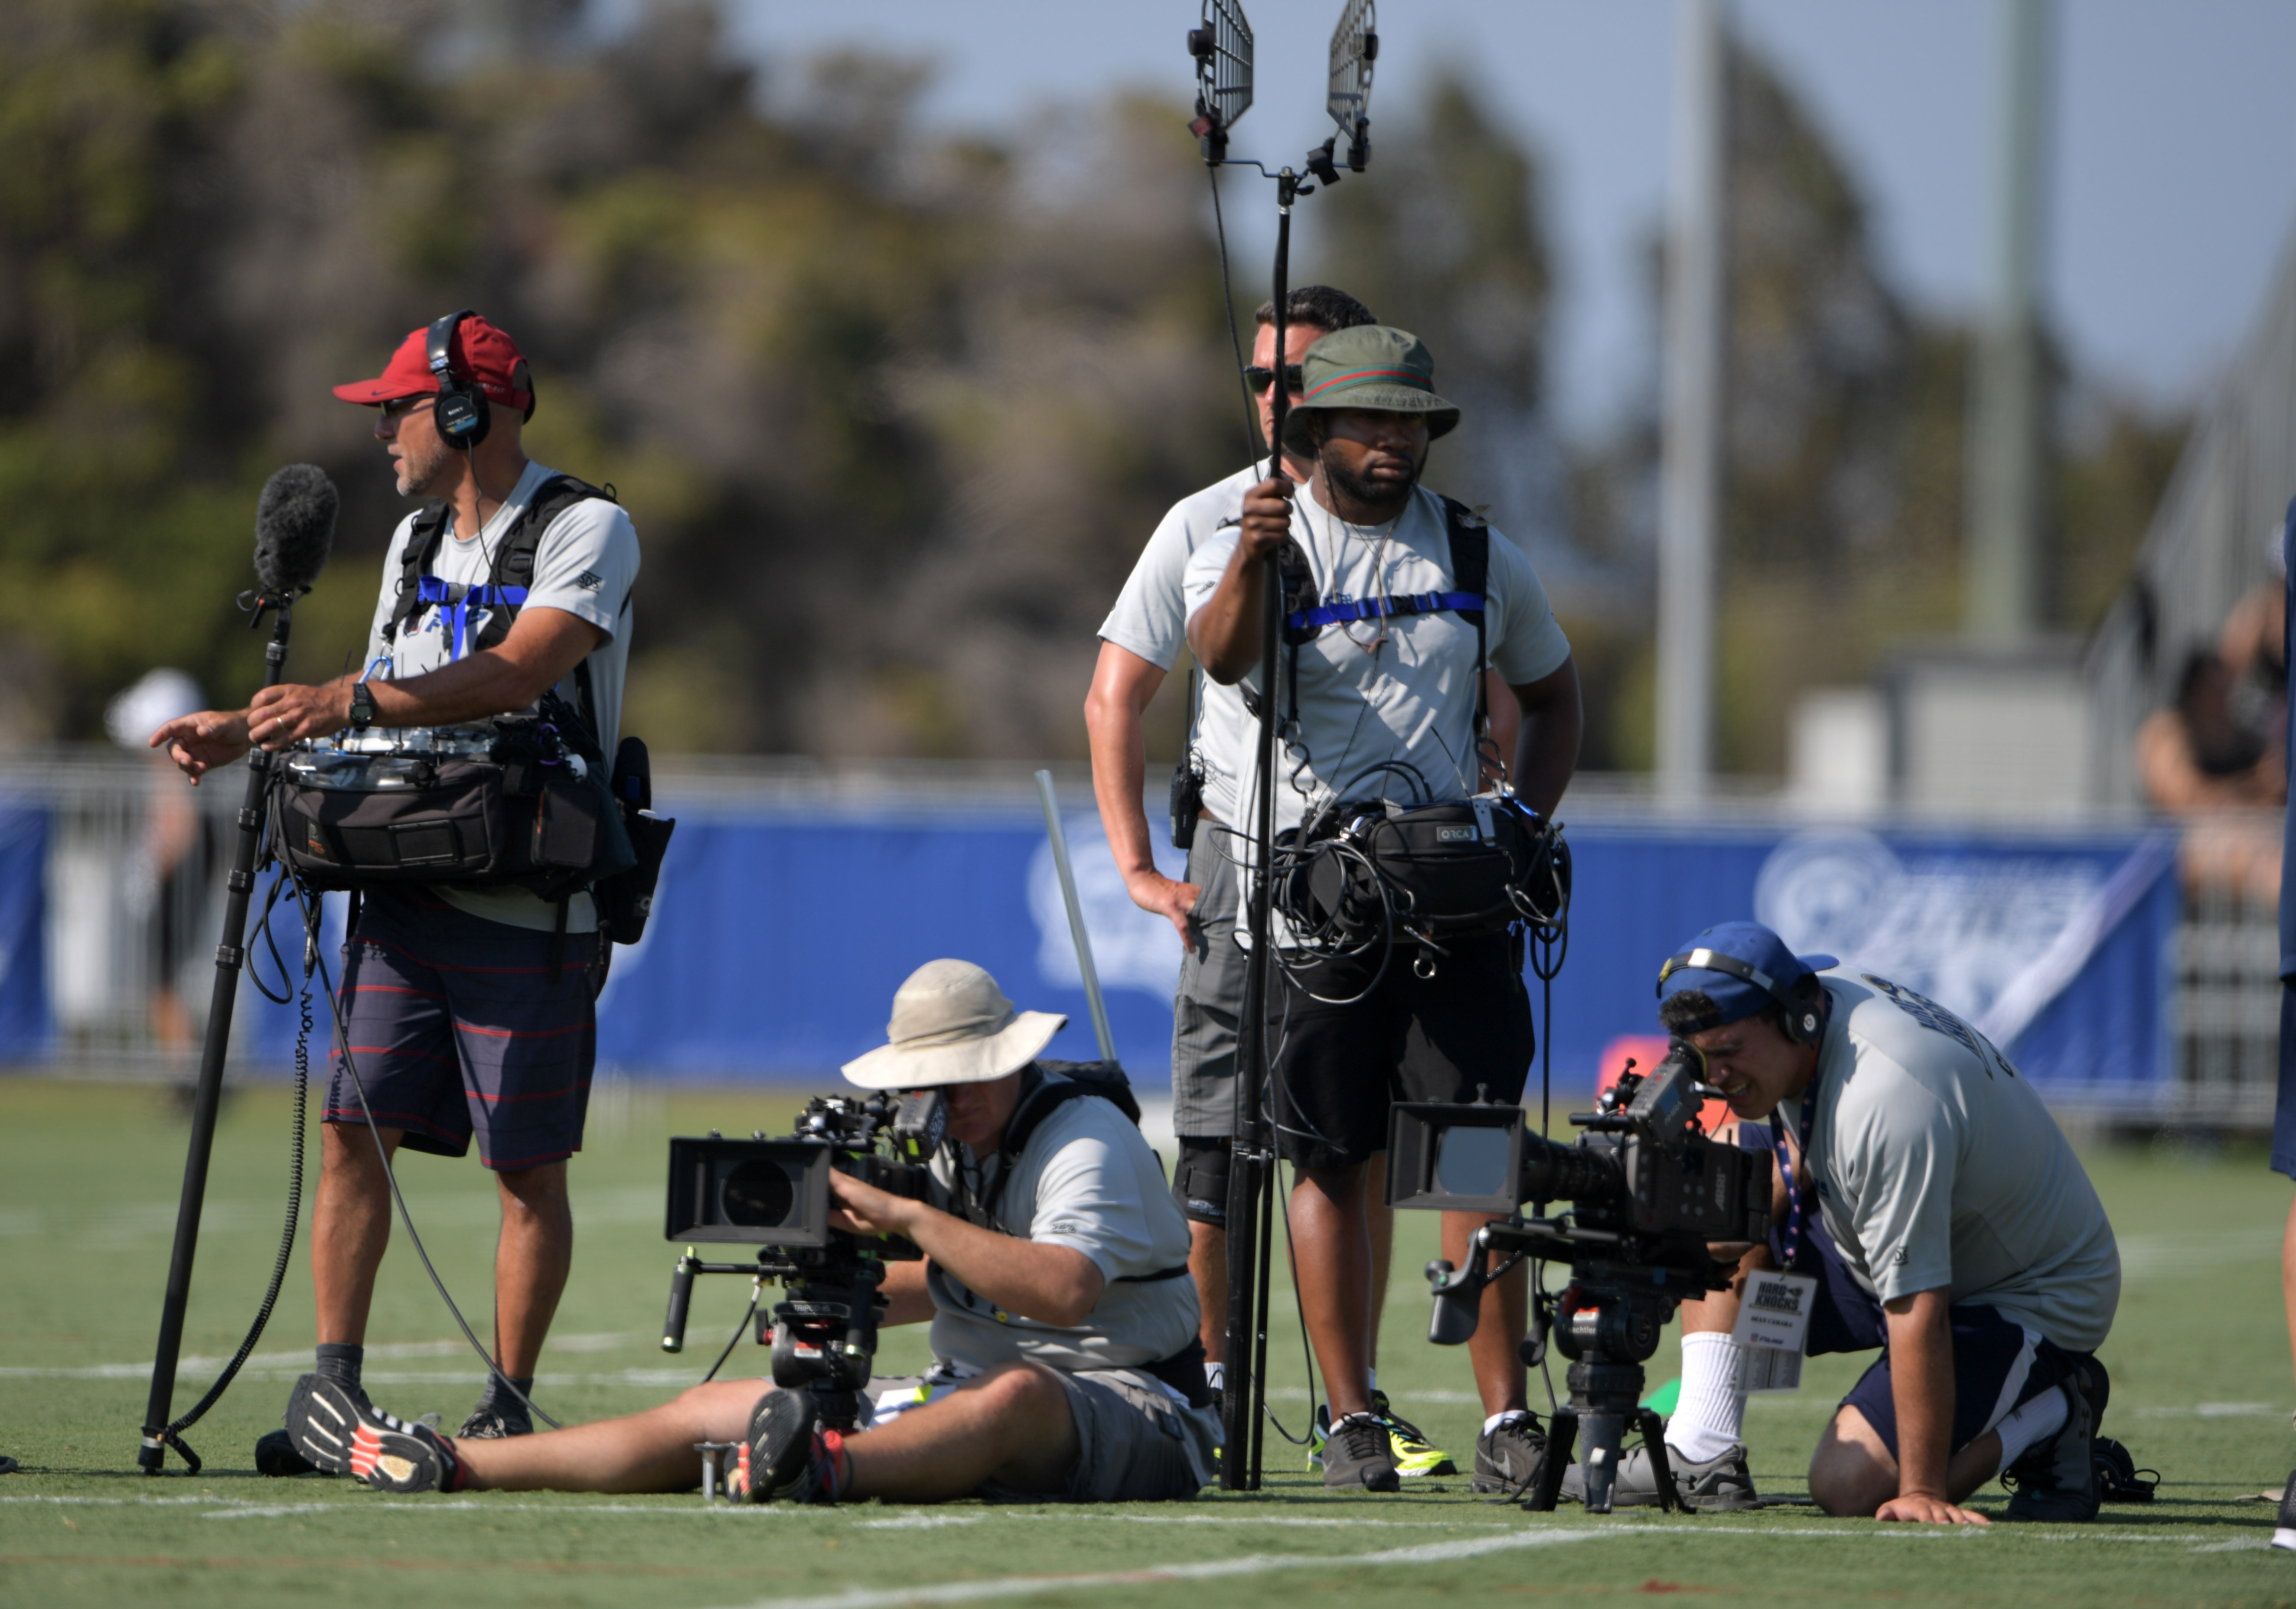 Chargers, Rams to Costar on 'Hard Knocks' During Training Camp